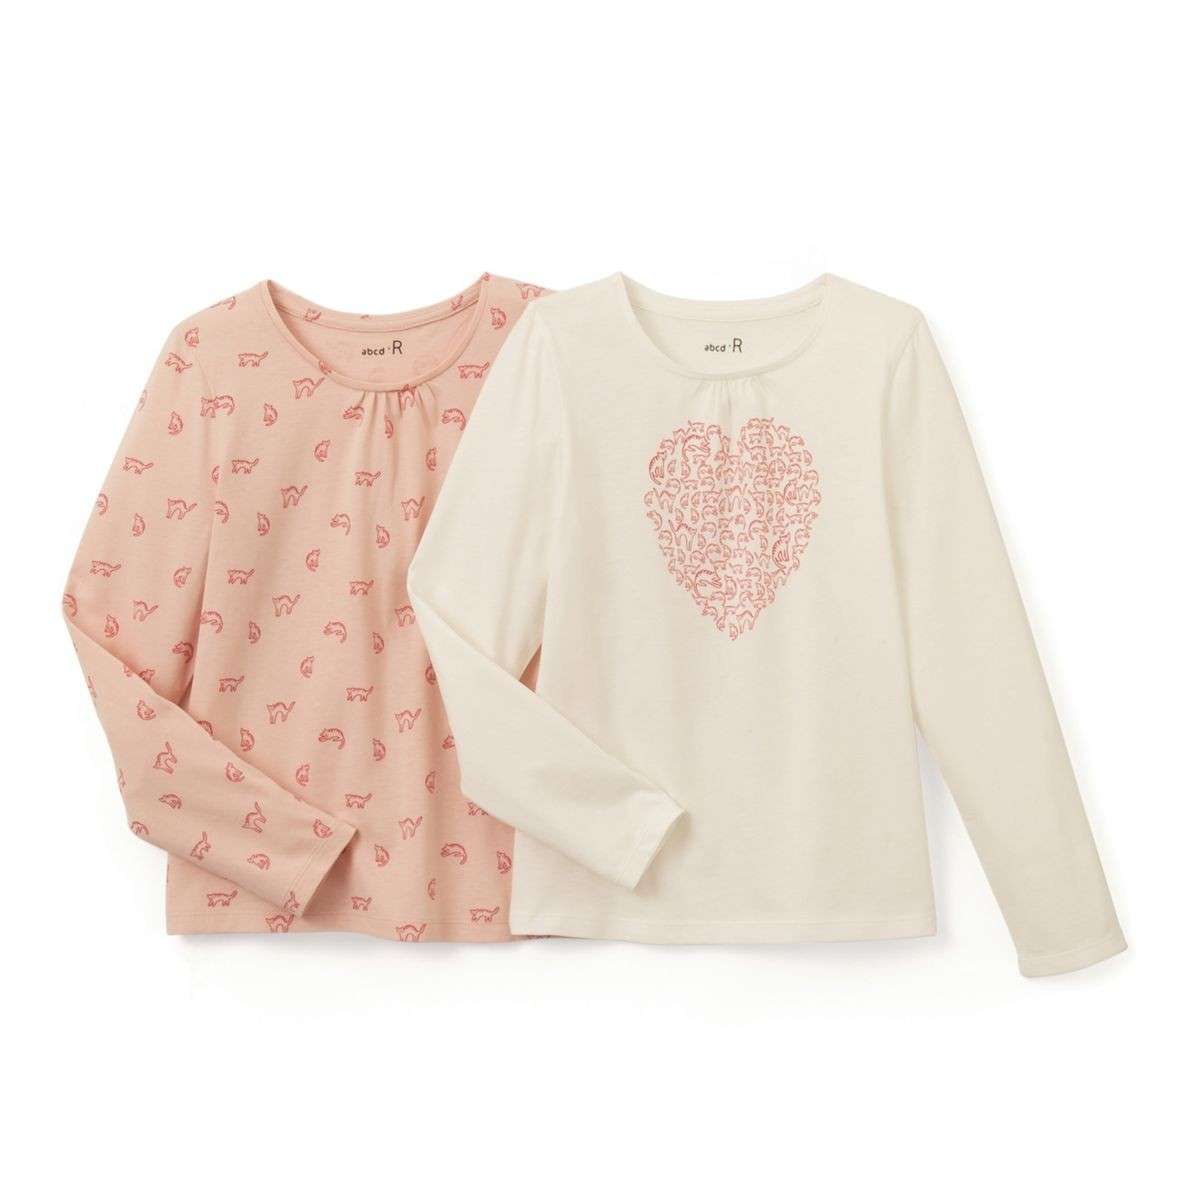 LA REDOUTE 猫モチーフ☆長袖カットソー2枚セット